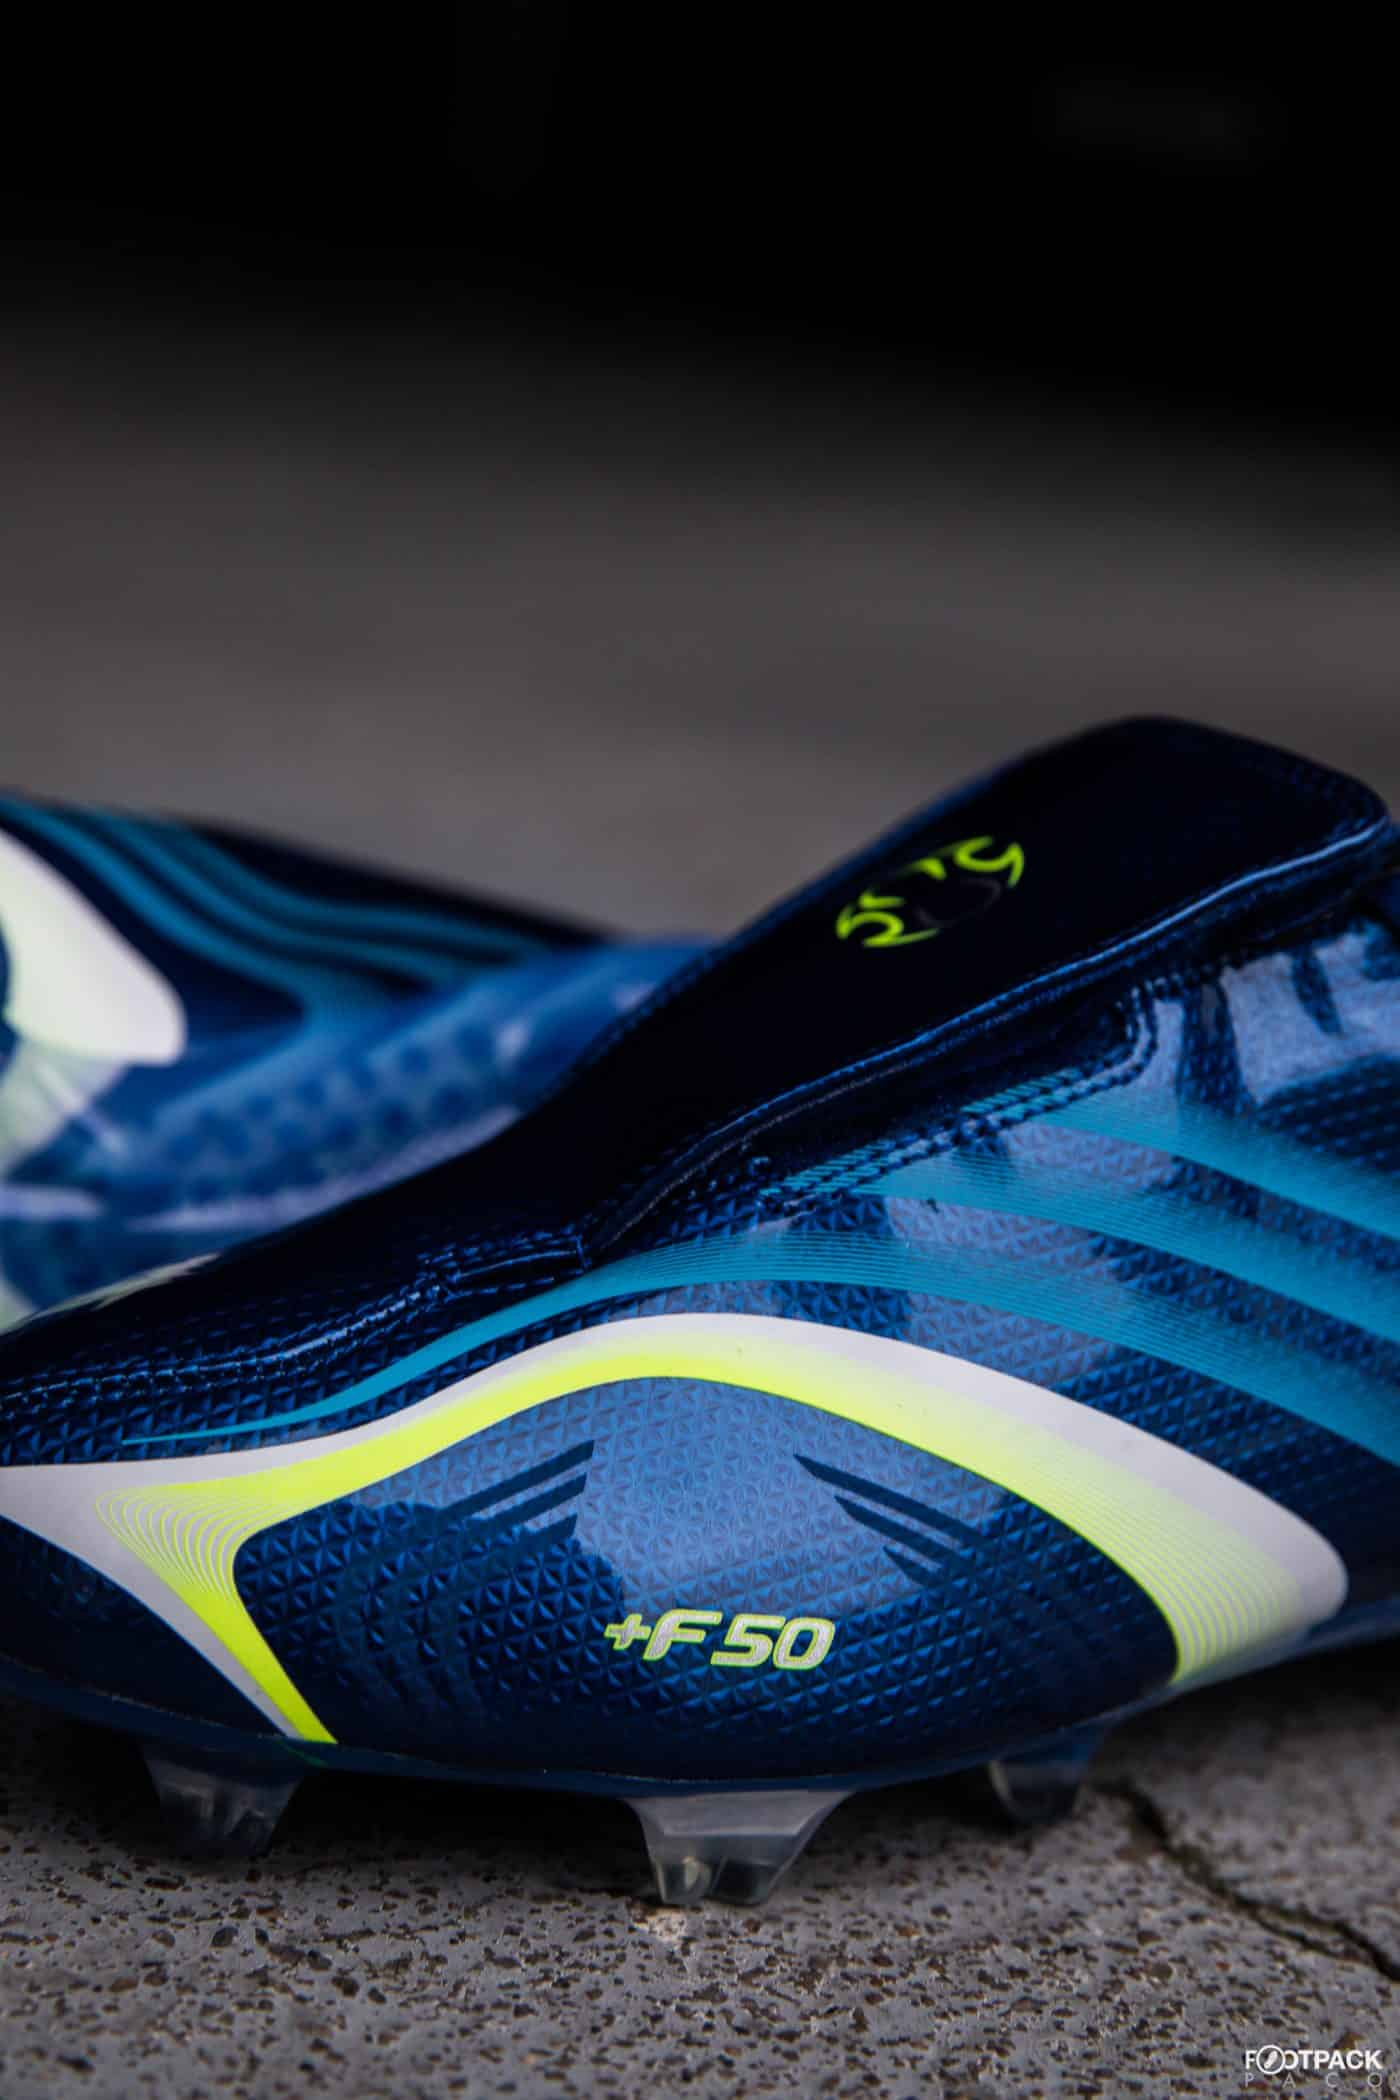 adidas-X50.6-reedition-2019-adidas-F50.6-tunit-2006-footpack-18